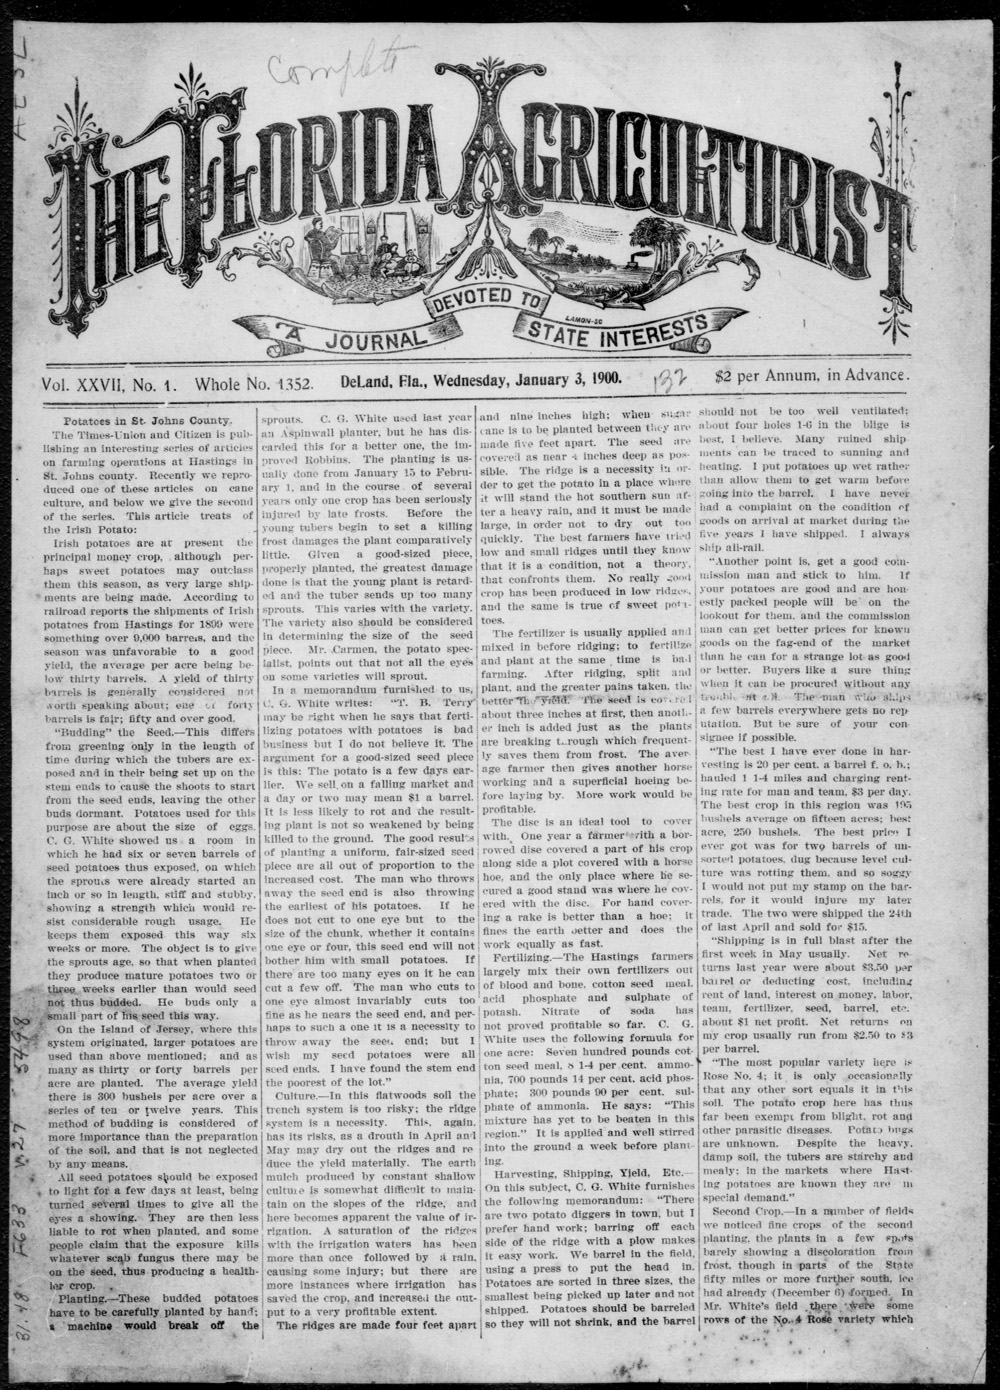 The Florida agriculturist - Page 1